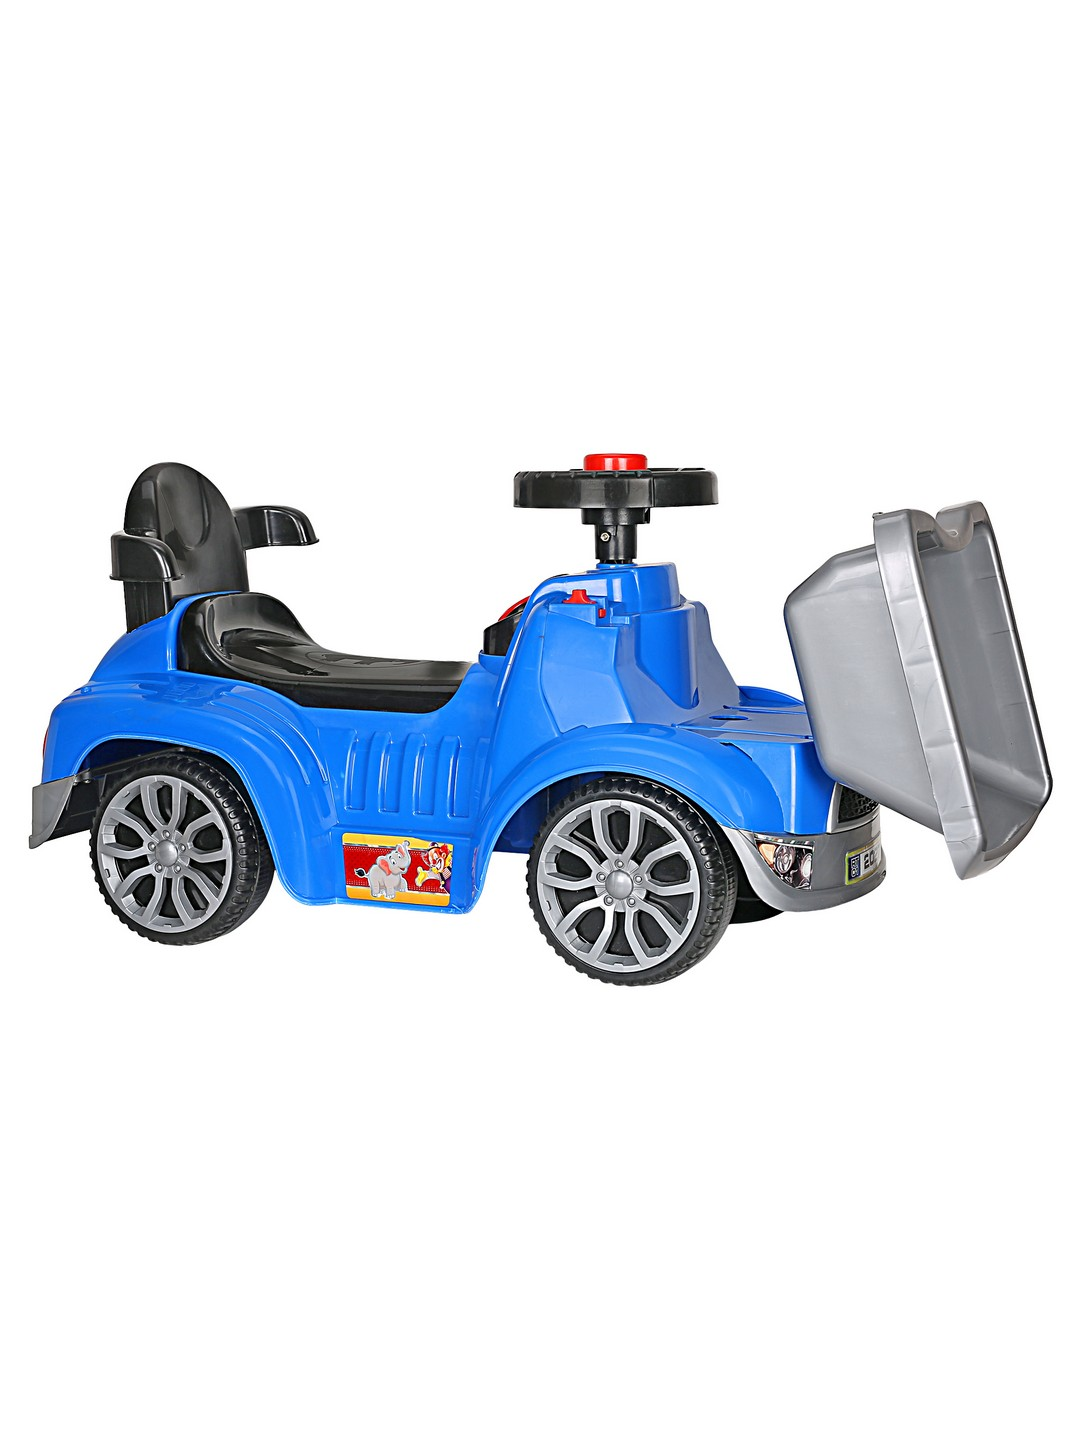 CREATURE | Creature Blue Ooga Rider Ride-On Cars Toy Vehicle for Kids